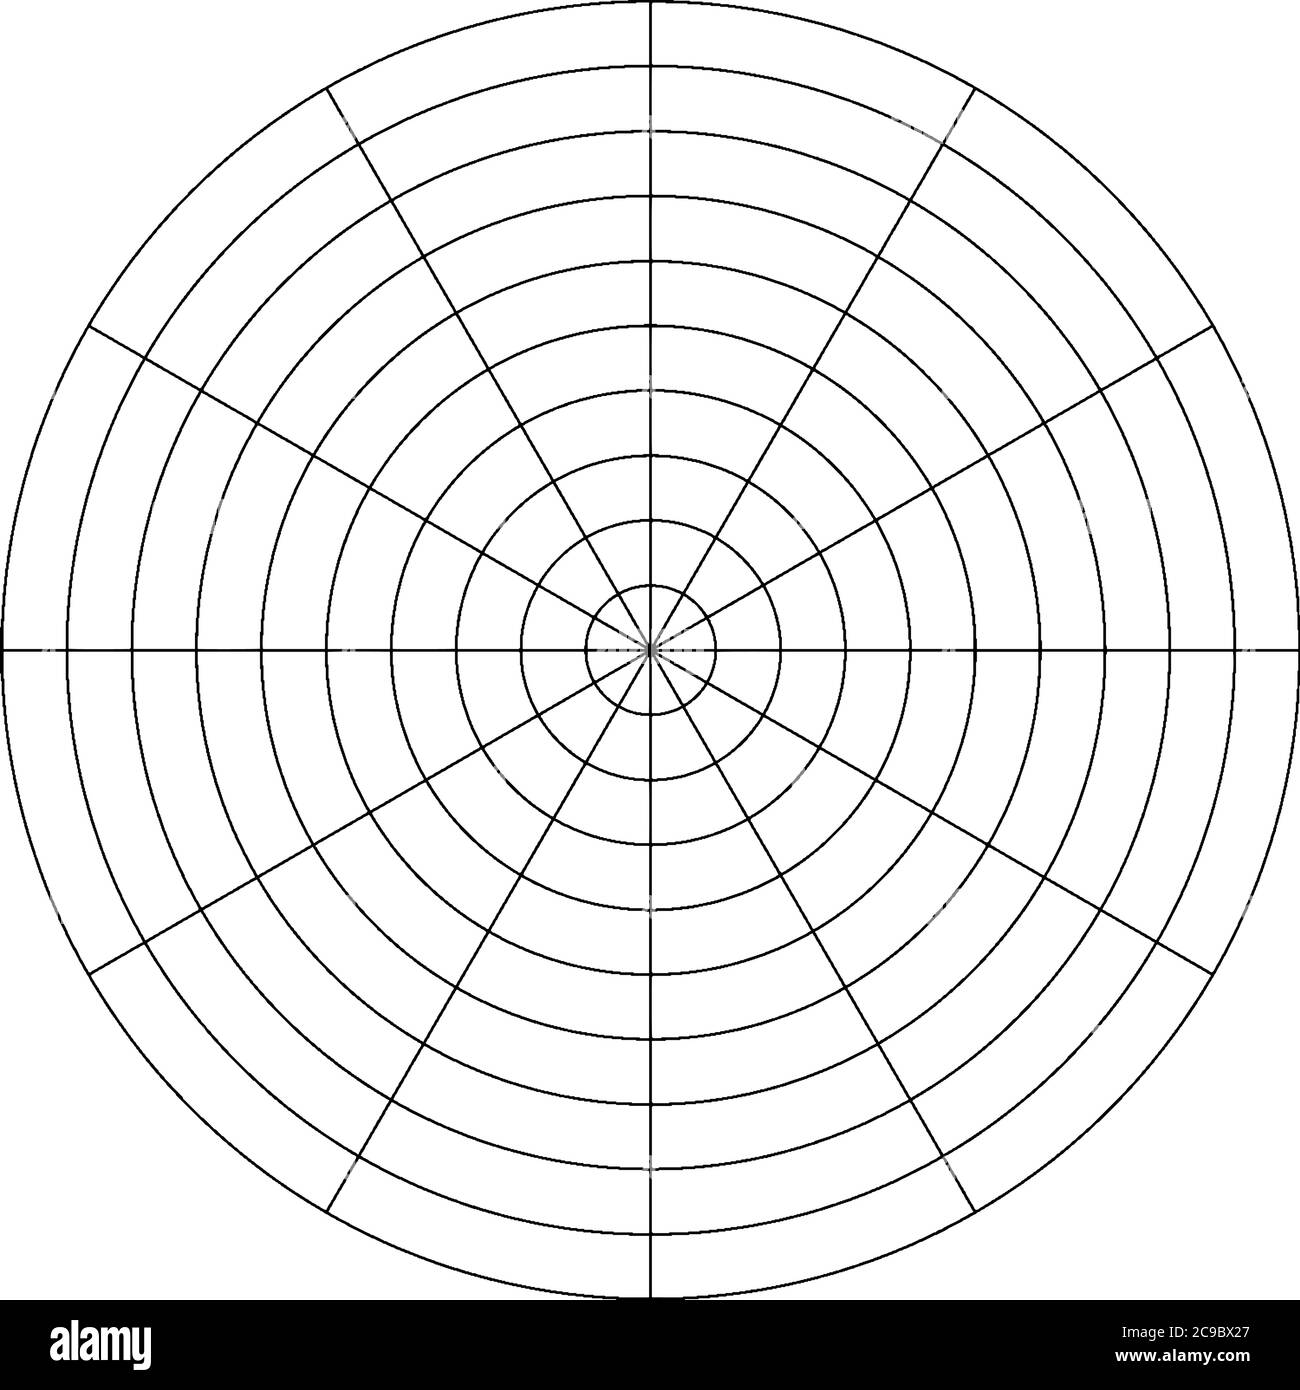 Divided Circle Black And White Stock Photos Images Alamy